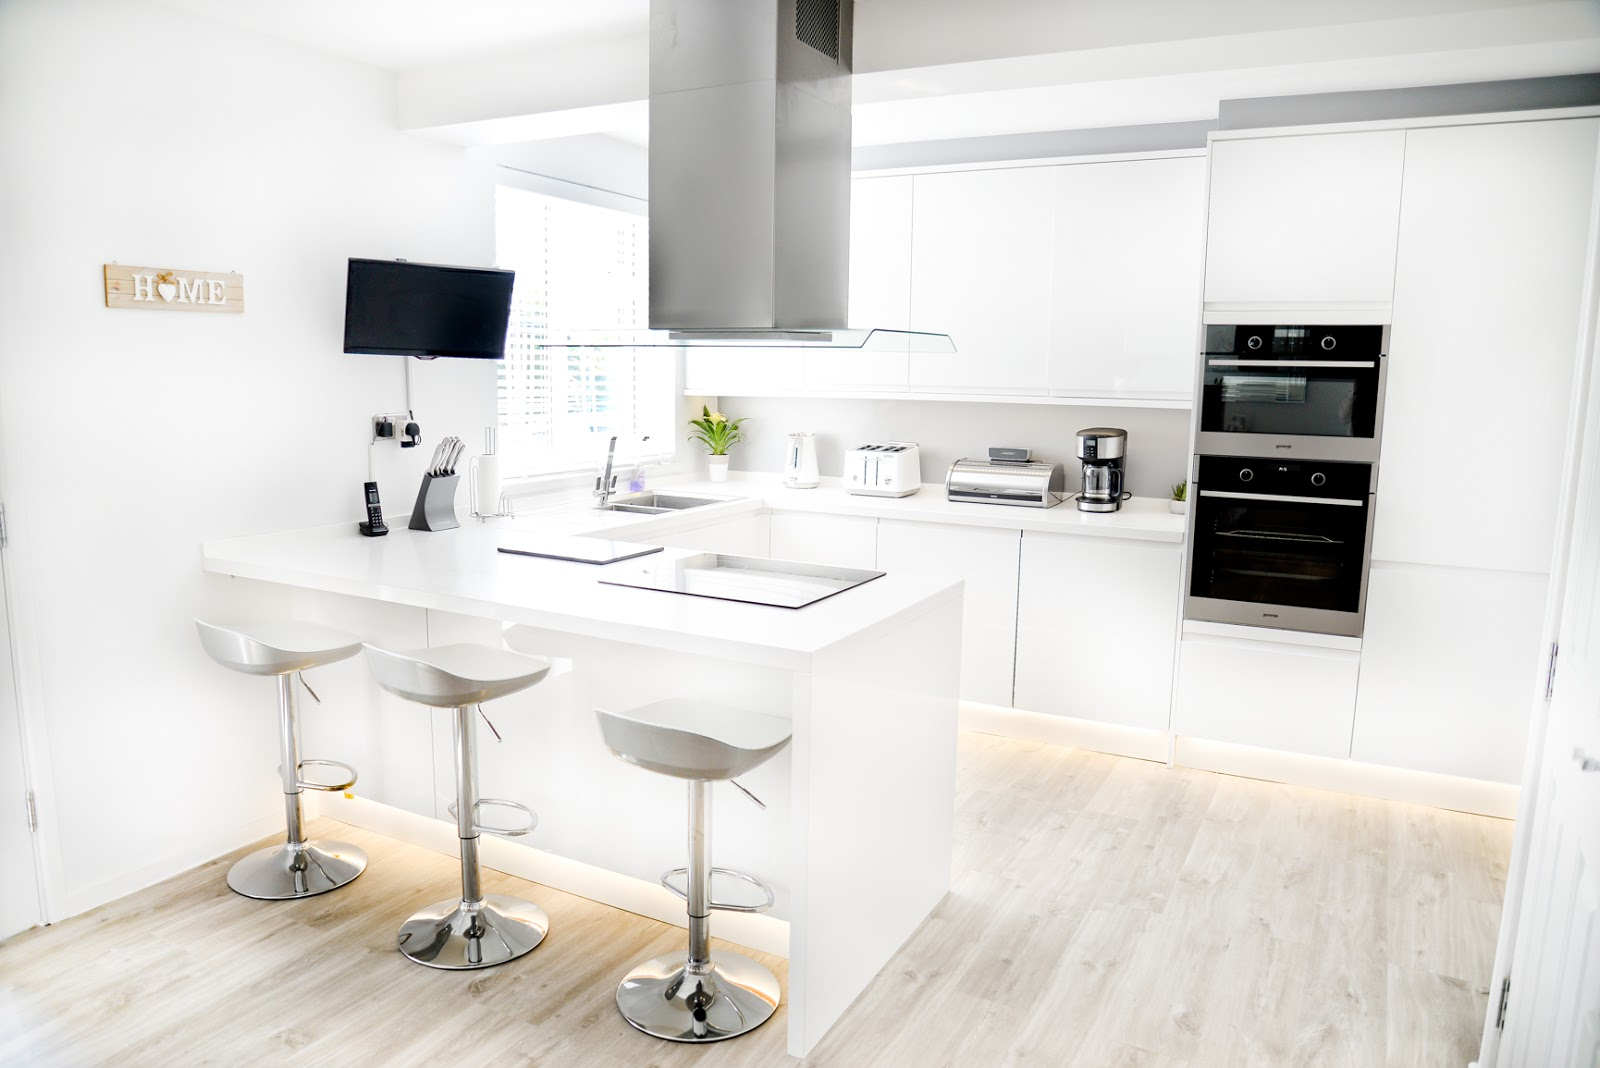 white modern Scandinavian style kitchen diner, modern white kitchen, modern rustic kitchen, howdens clerkenwell gloss kitchen